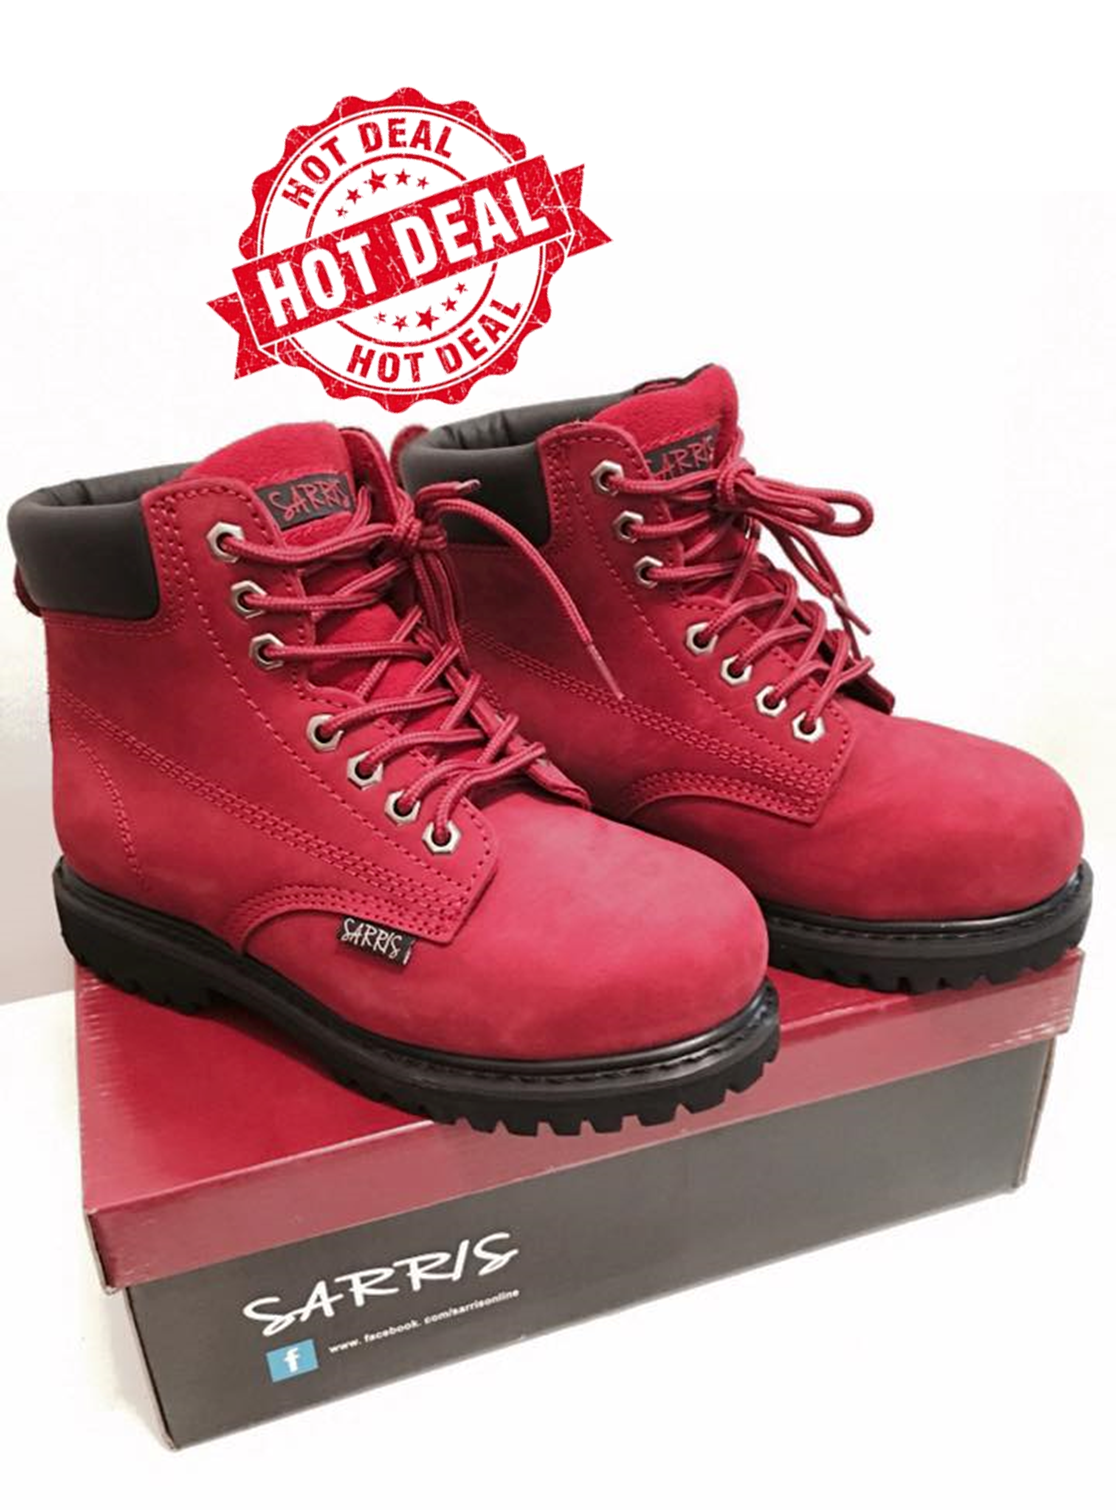 Ankle High Lace-Up Safety Boots WORK LACE UP STEEL TOE CAP ANTI SLIP LADIES MENS